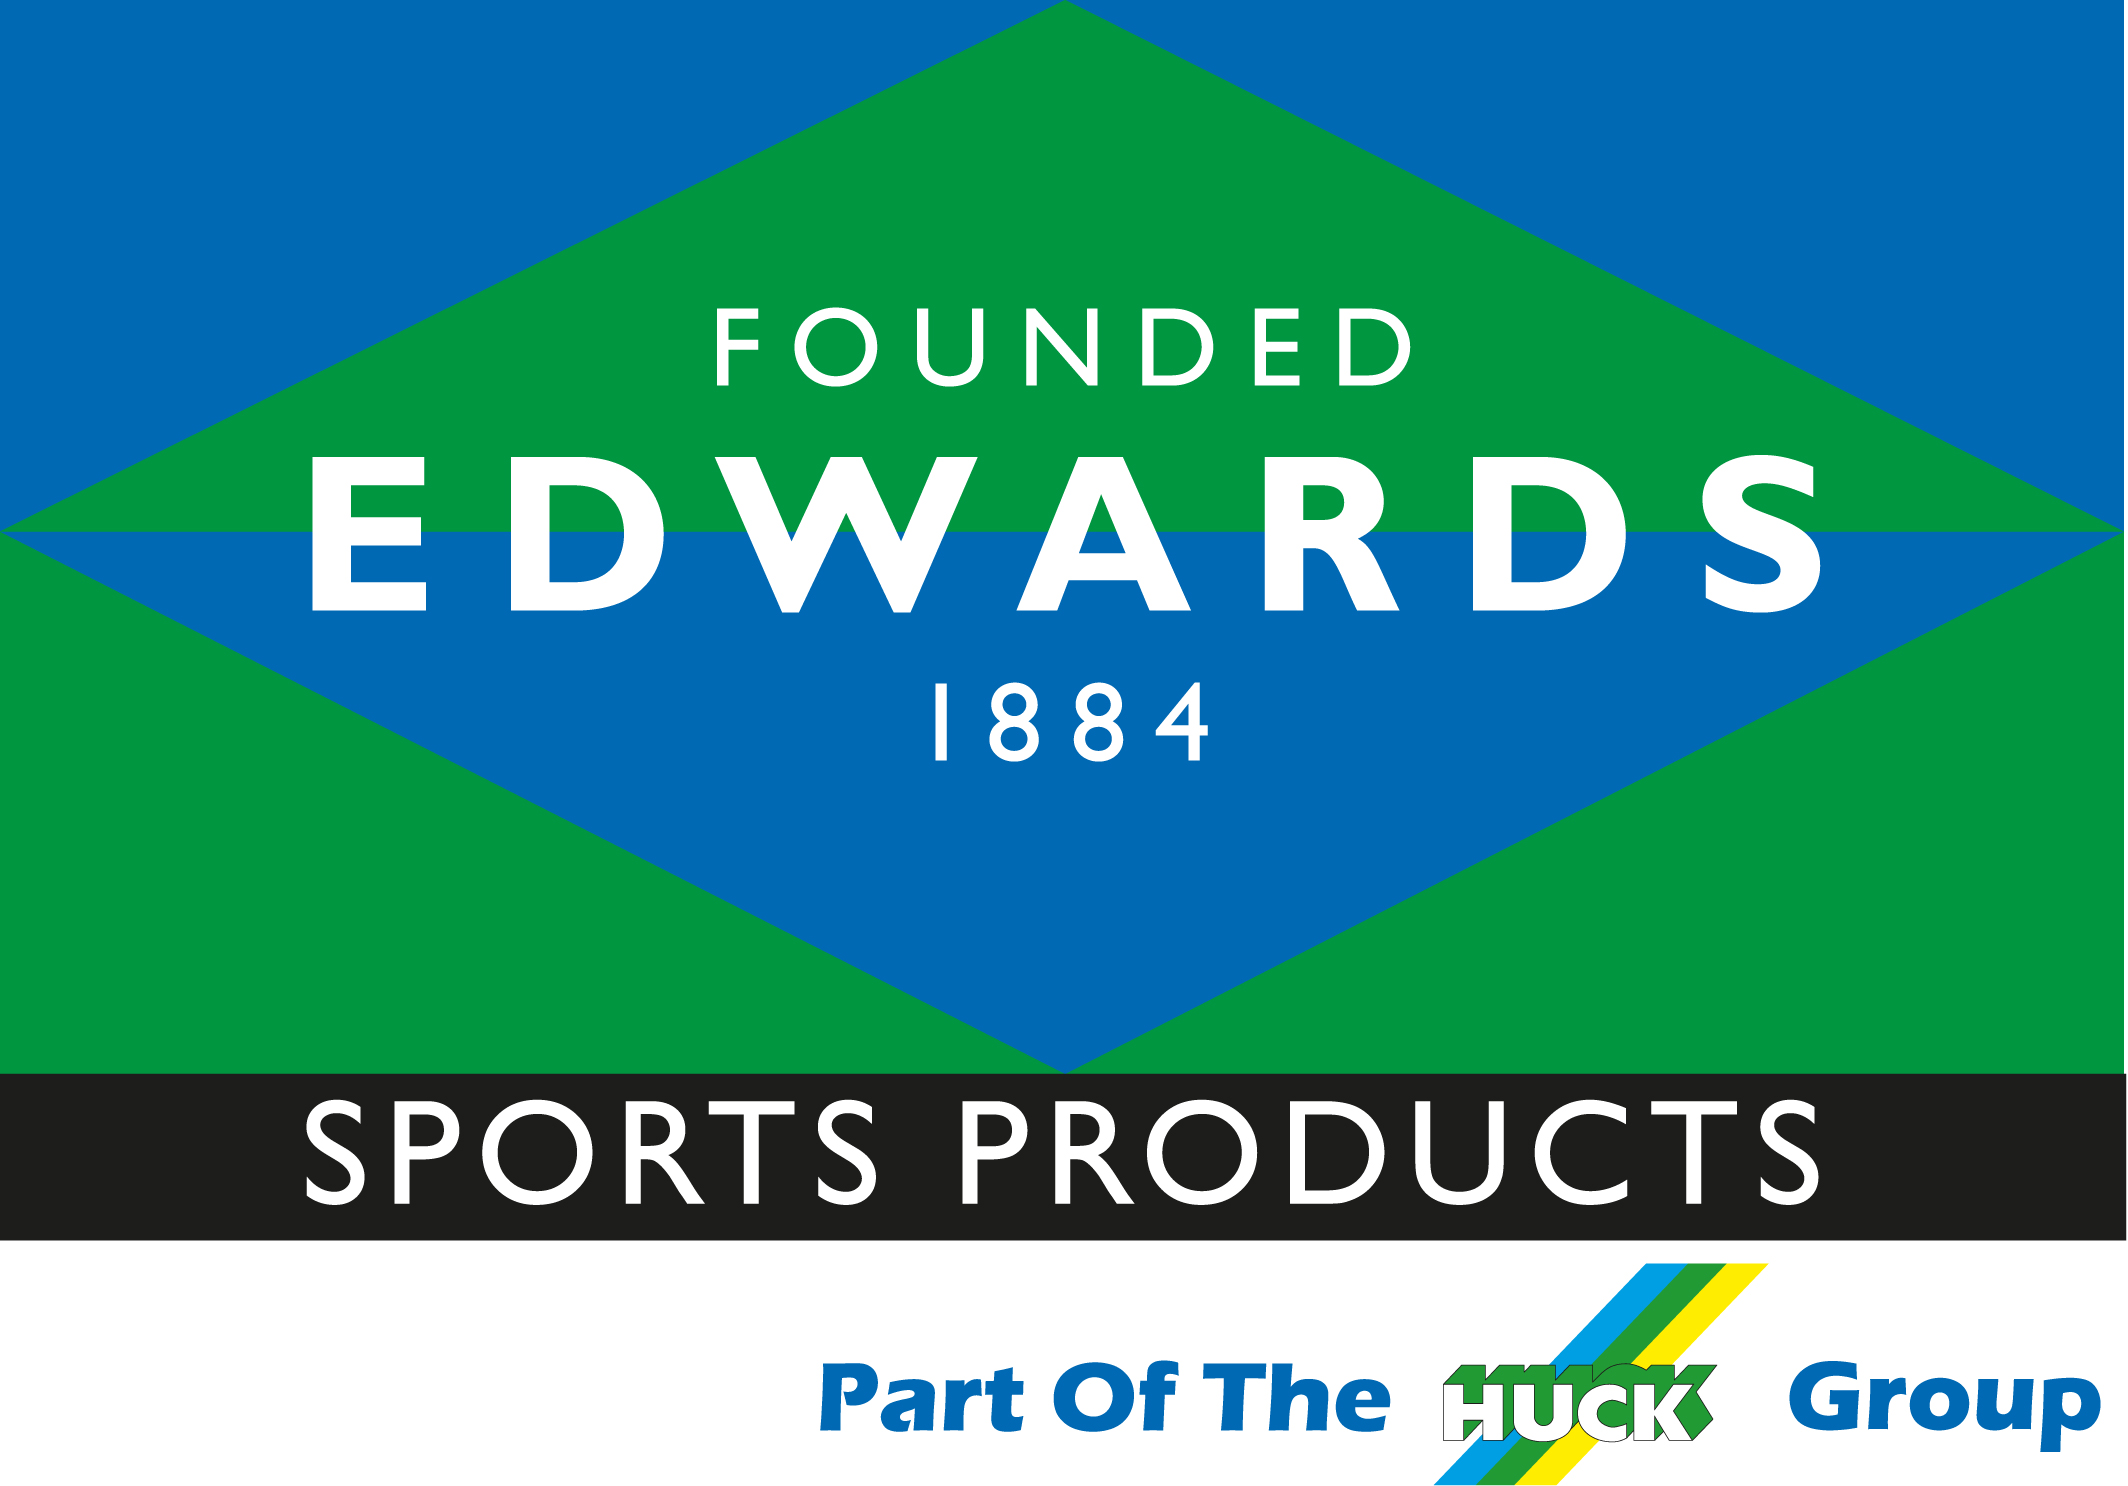 Edward's sports the world finest tennis nets